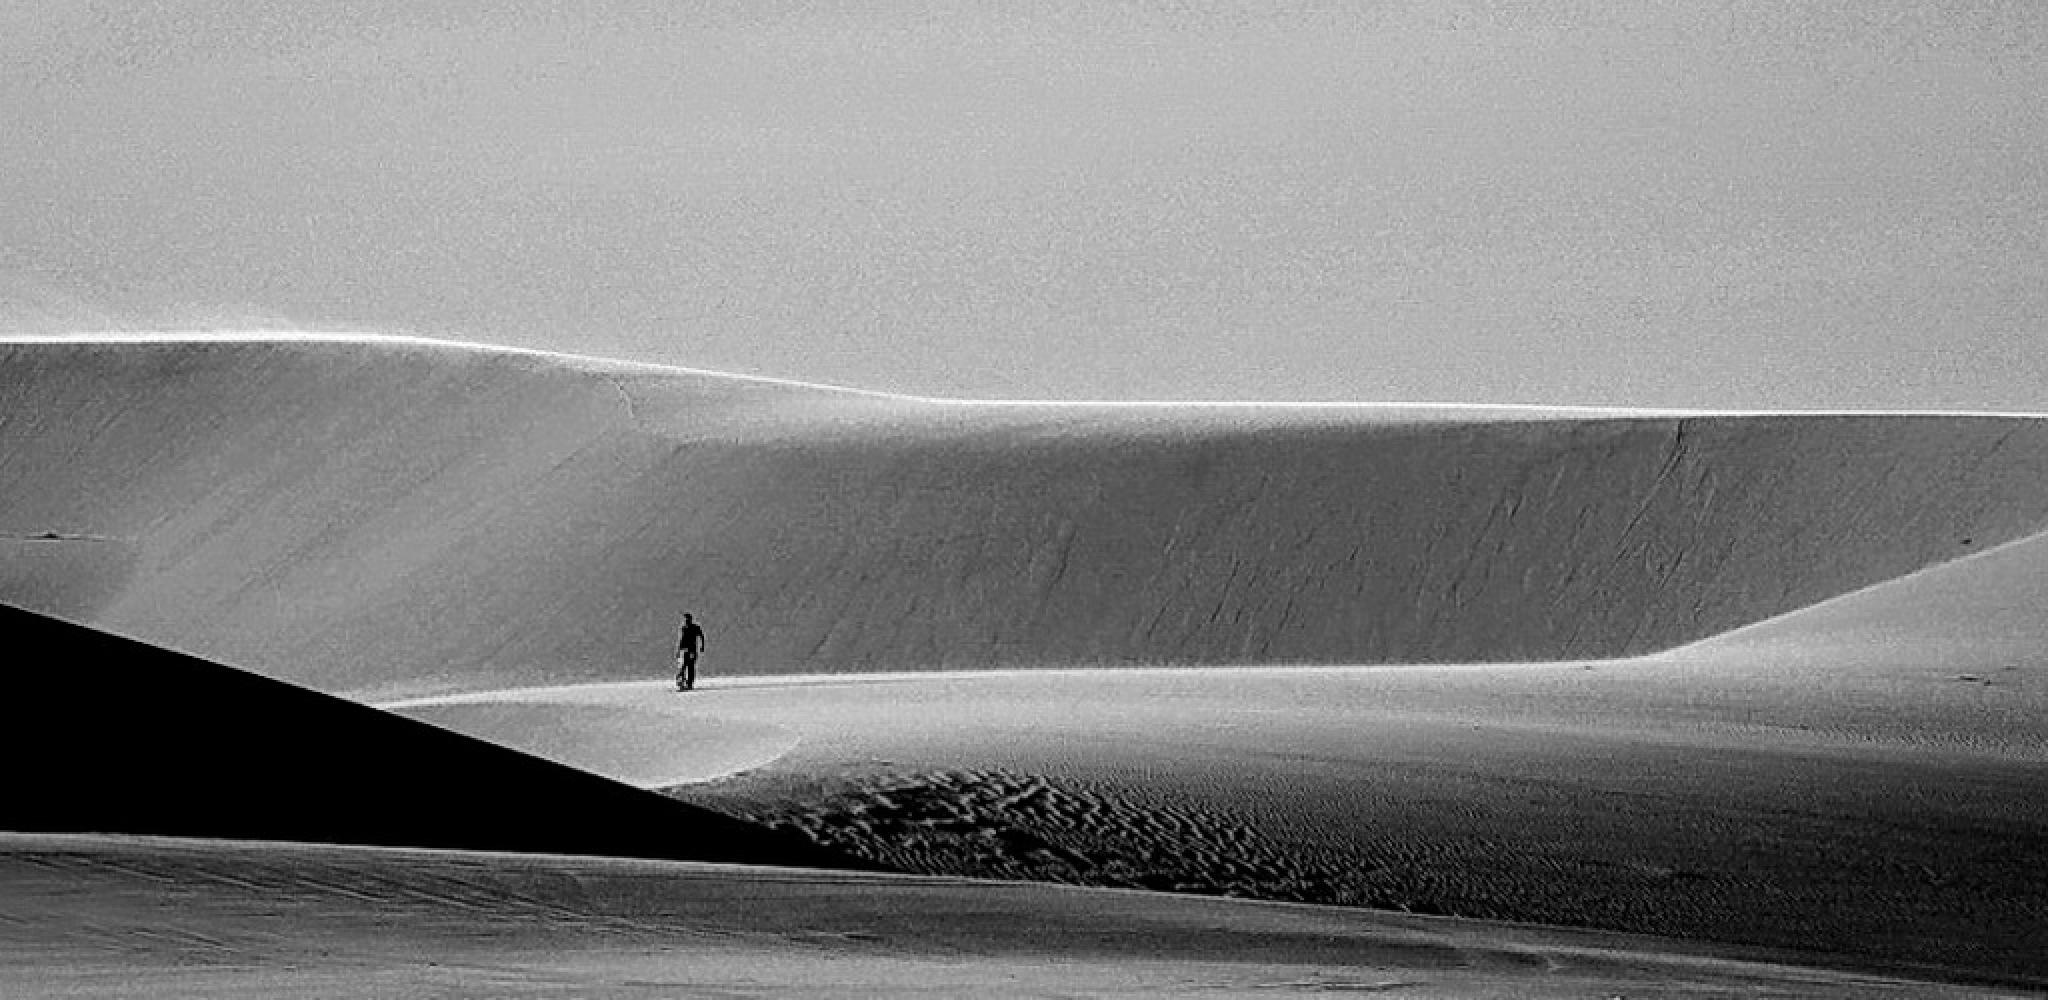 Alone by phungtuan